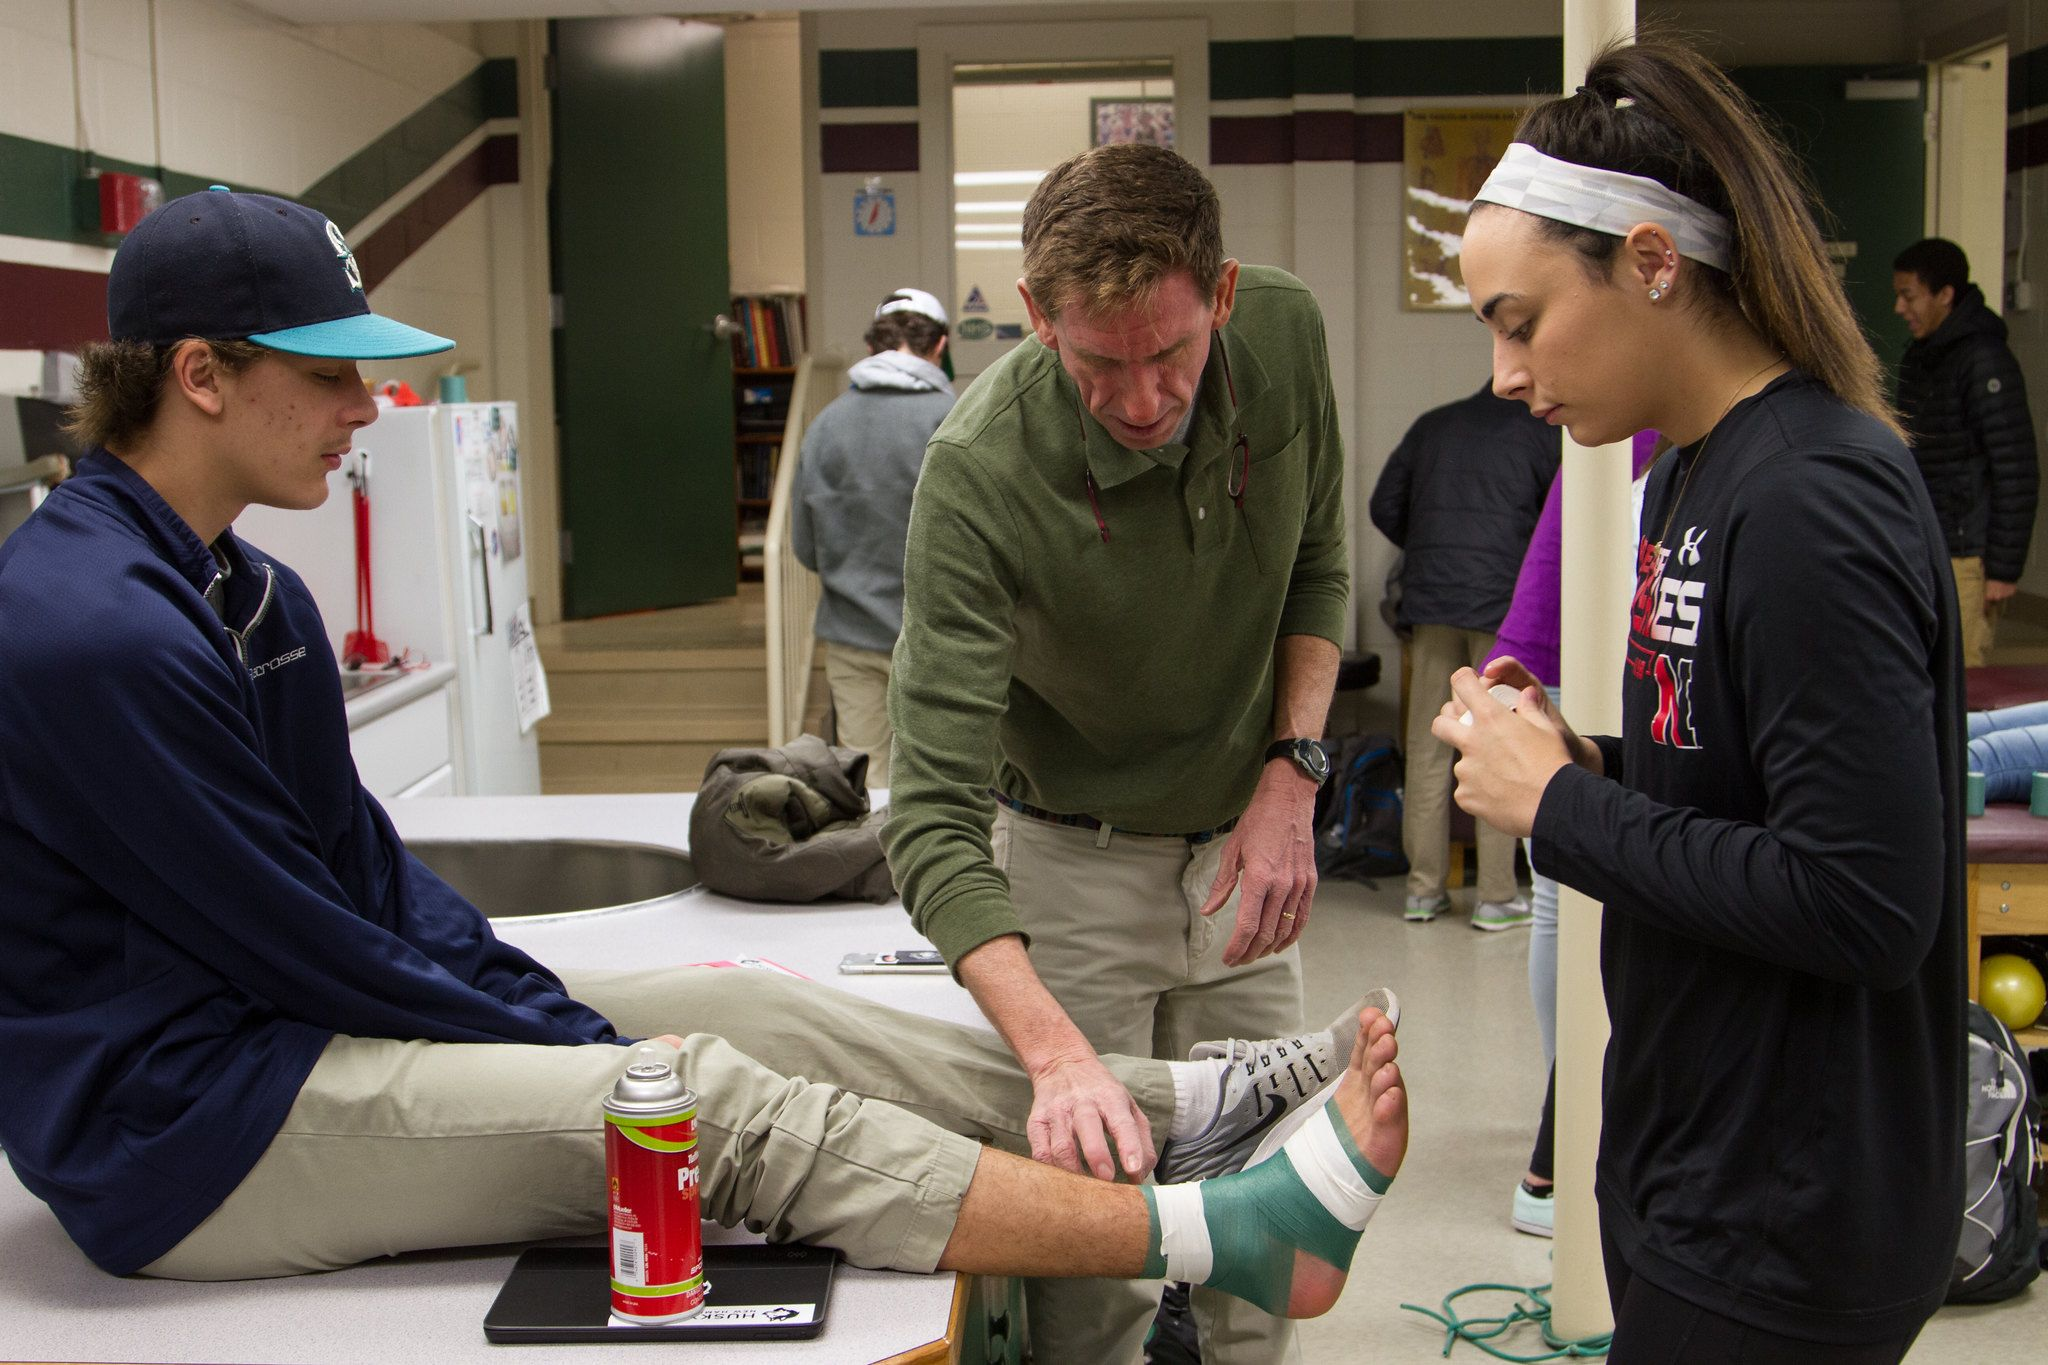 New Hampton School's certified athletic trainers keep students healthy and injury free.